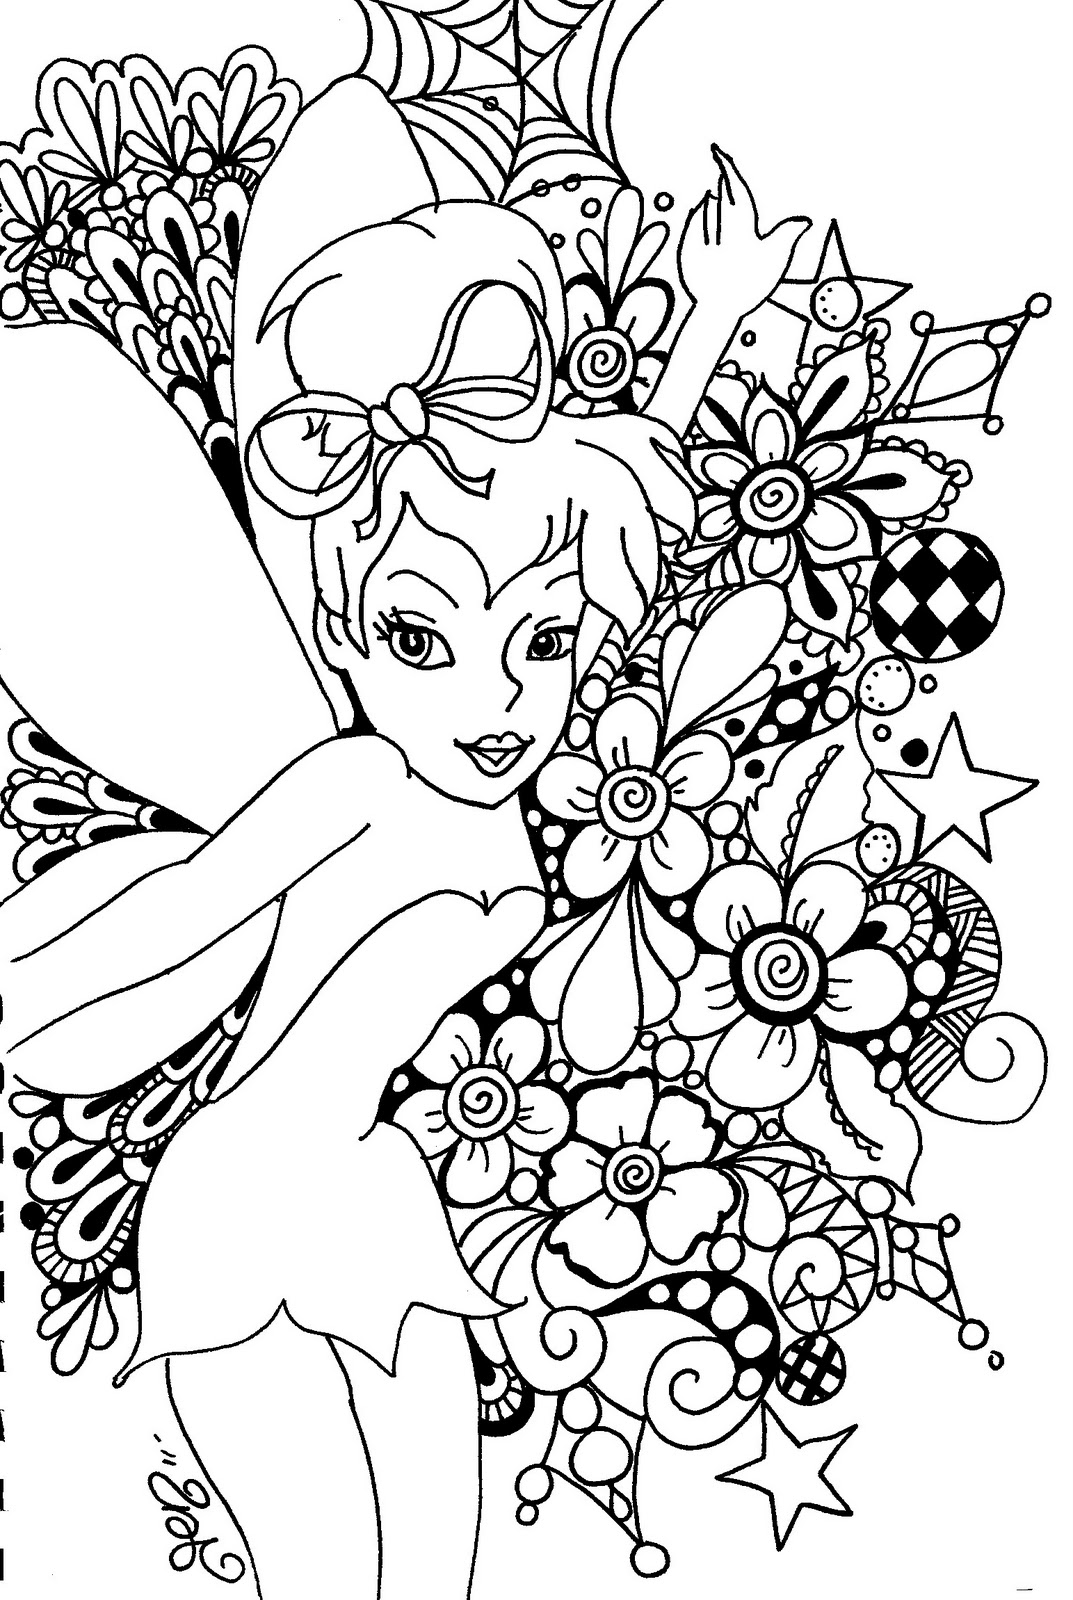 fairies coloring pages fairy coloring pages to bring out the hidden artist in coloring fairies pages